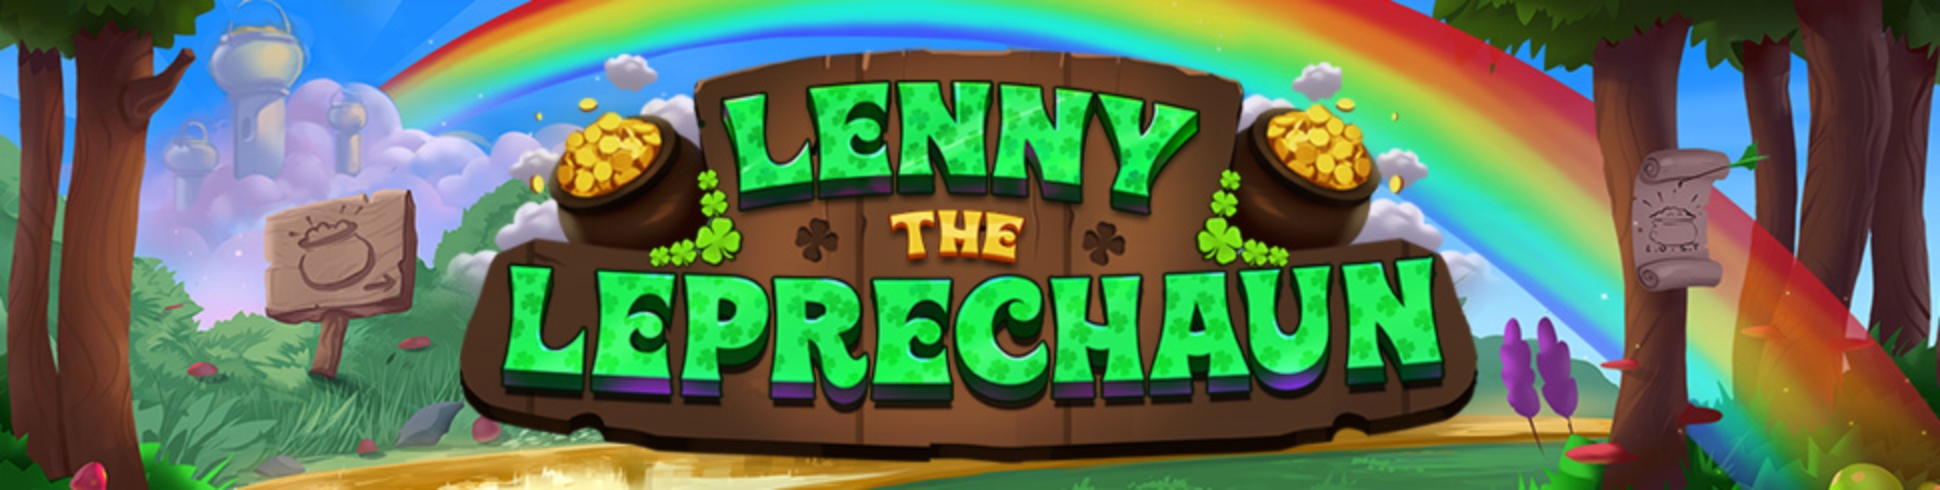 The Lenny the Leprechaun Online Slot Demo Game by Mobilots